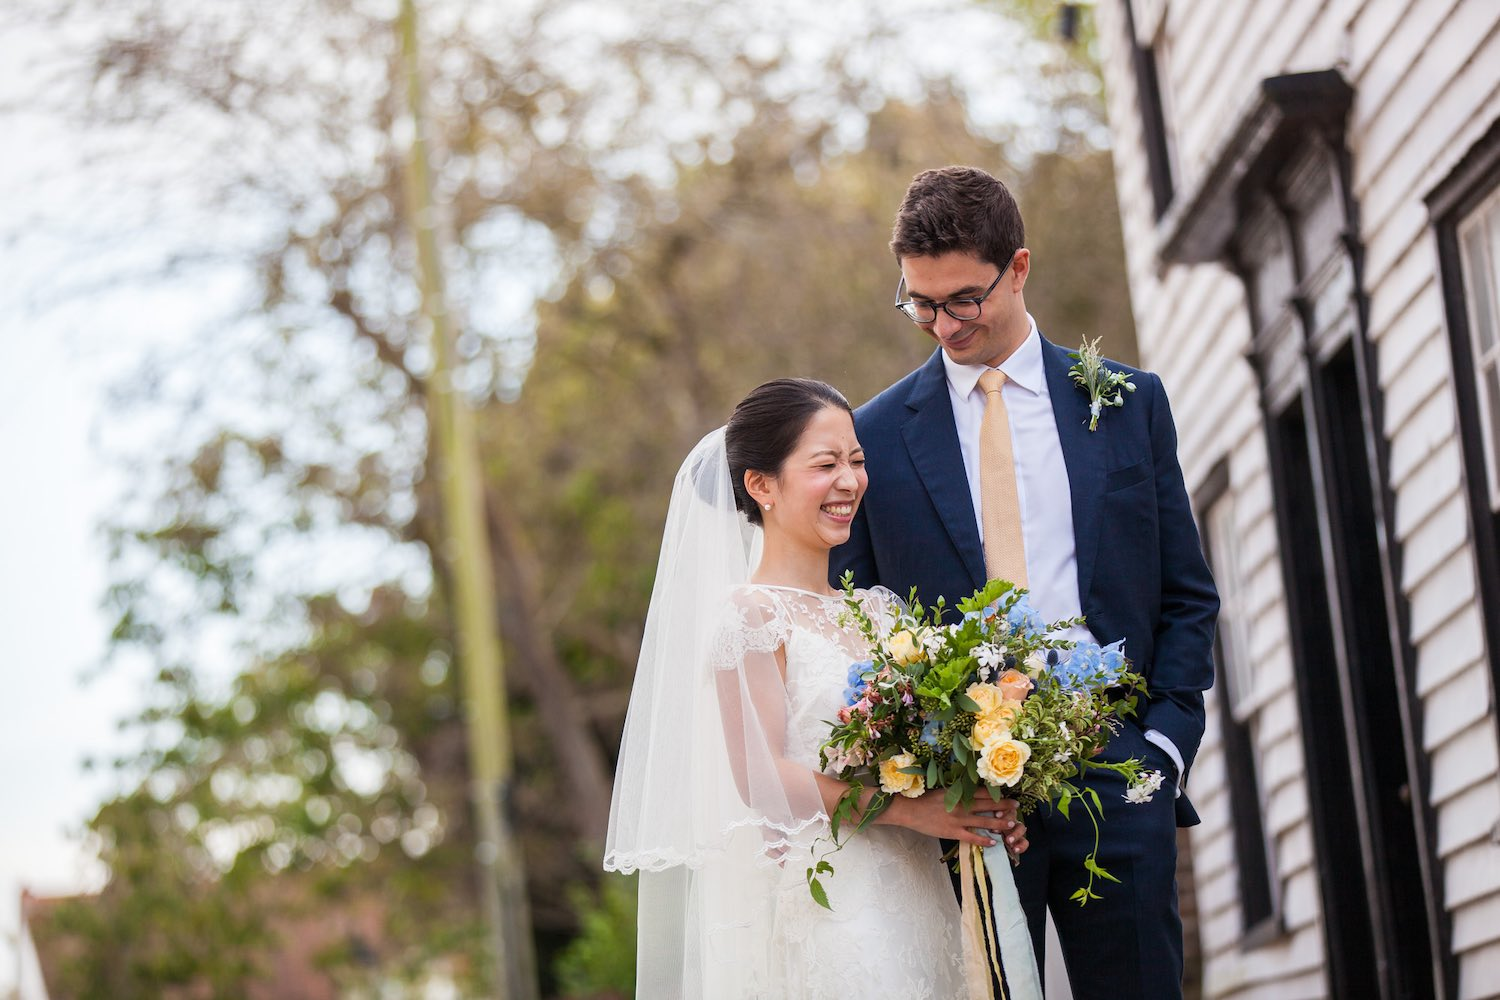 Bride and groom with garden bouquet outside white cladded building